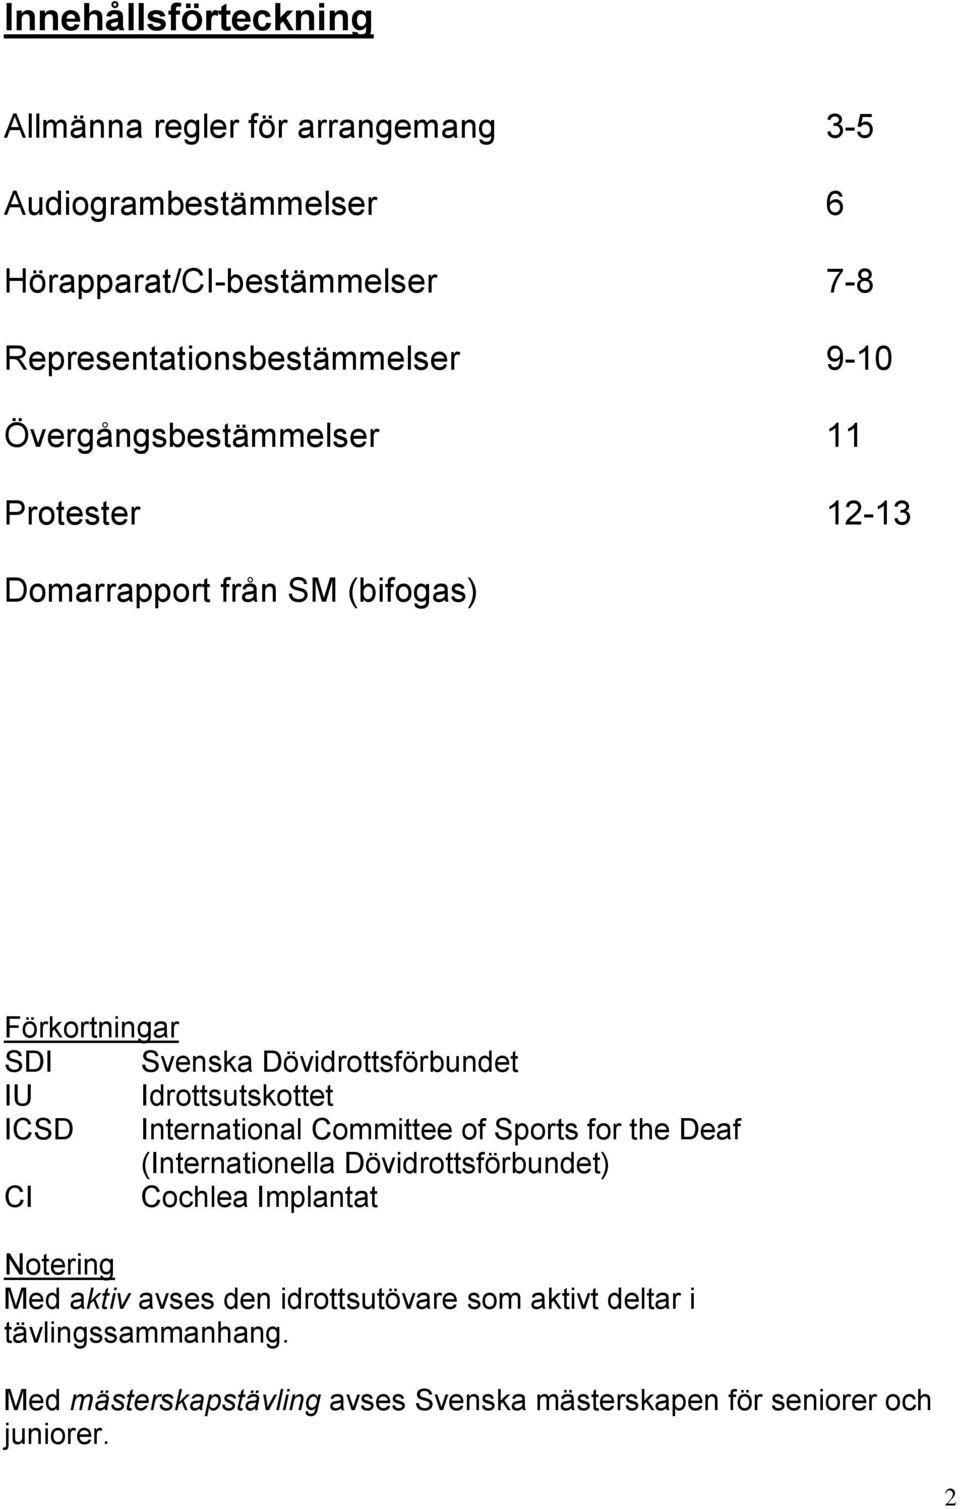 Dövidrottsförbundet IU Idrottsutskottet ICSD International Committee of Sports for the Deaf (Internationella Dövidrottsförbundet) CI